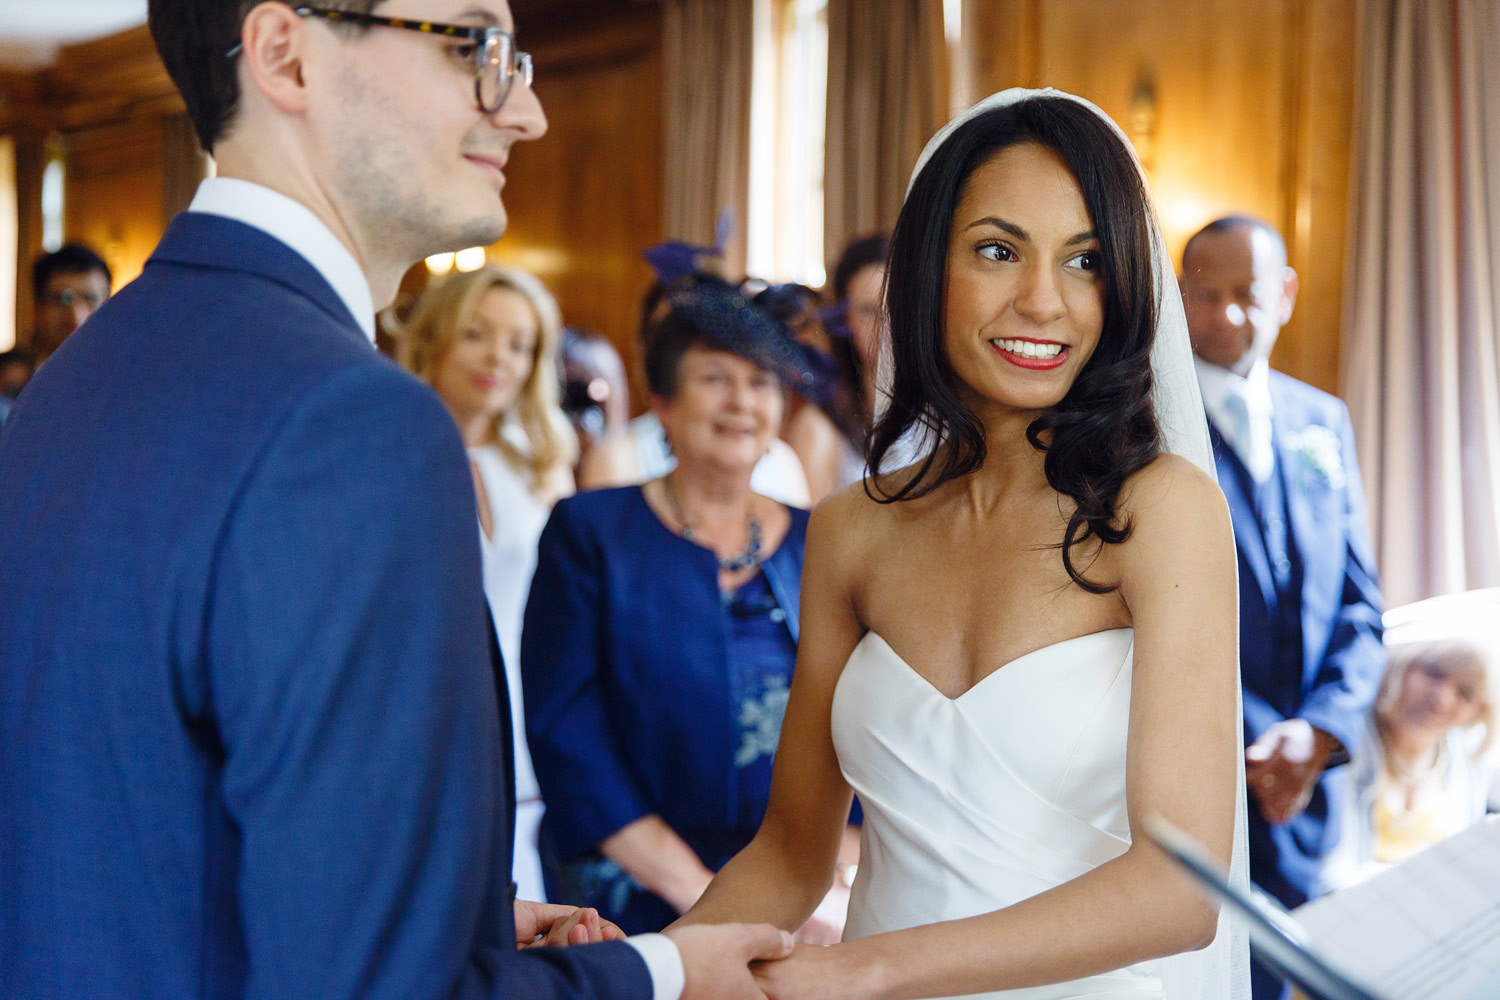 A wedding ceremony at Burgh House Museum in Hampstead, London - wedding photographer